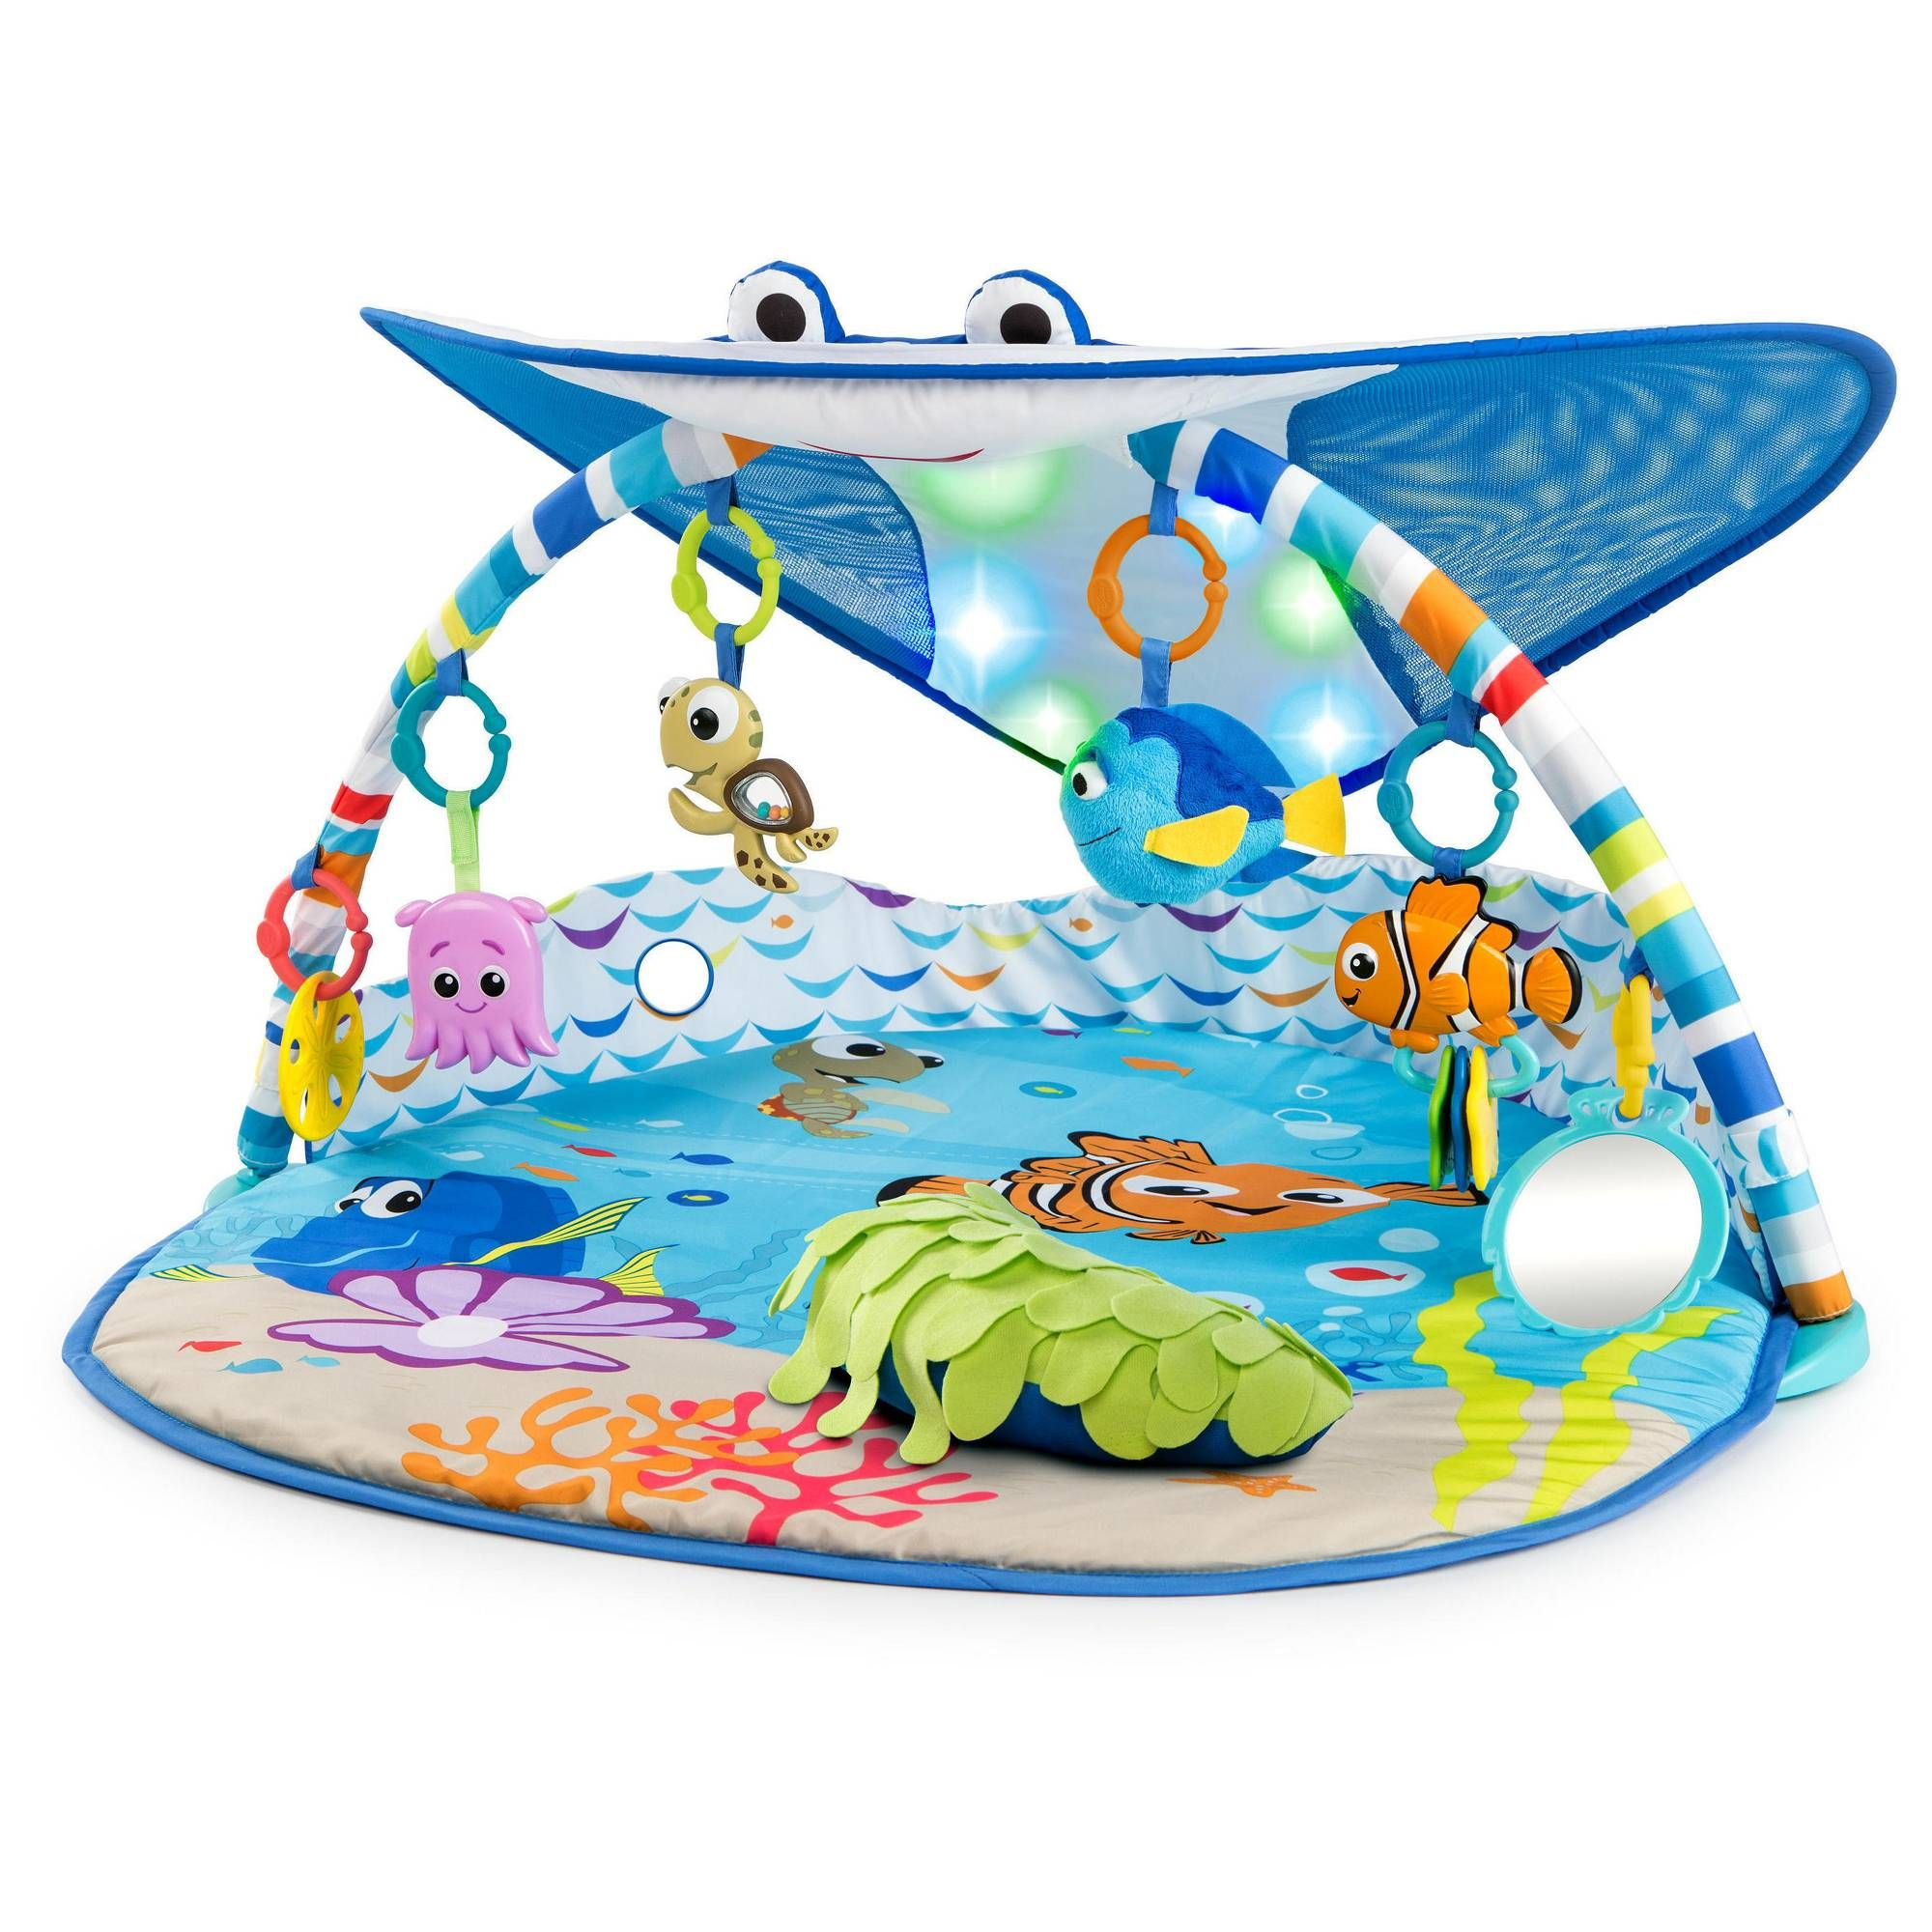 Uncategorized fisher price comfort curve bouncer new free shipping ebay - Disney Finding Nemo Baby Mr Ray Ocean Lights Activity Gym